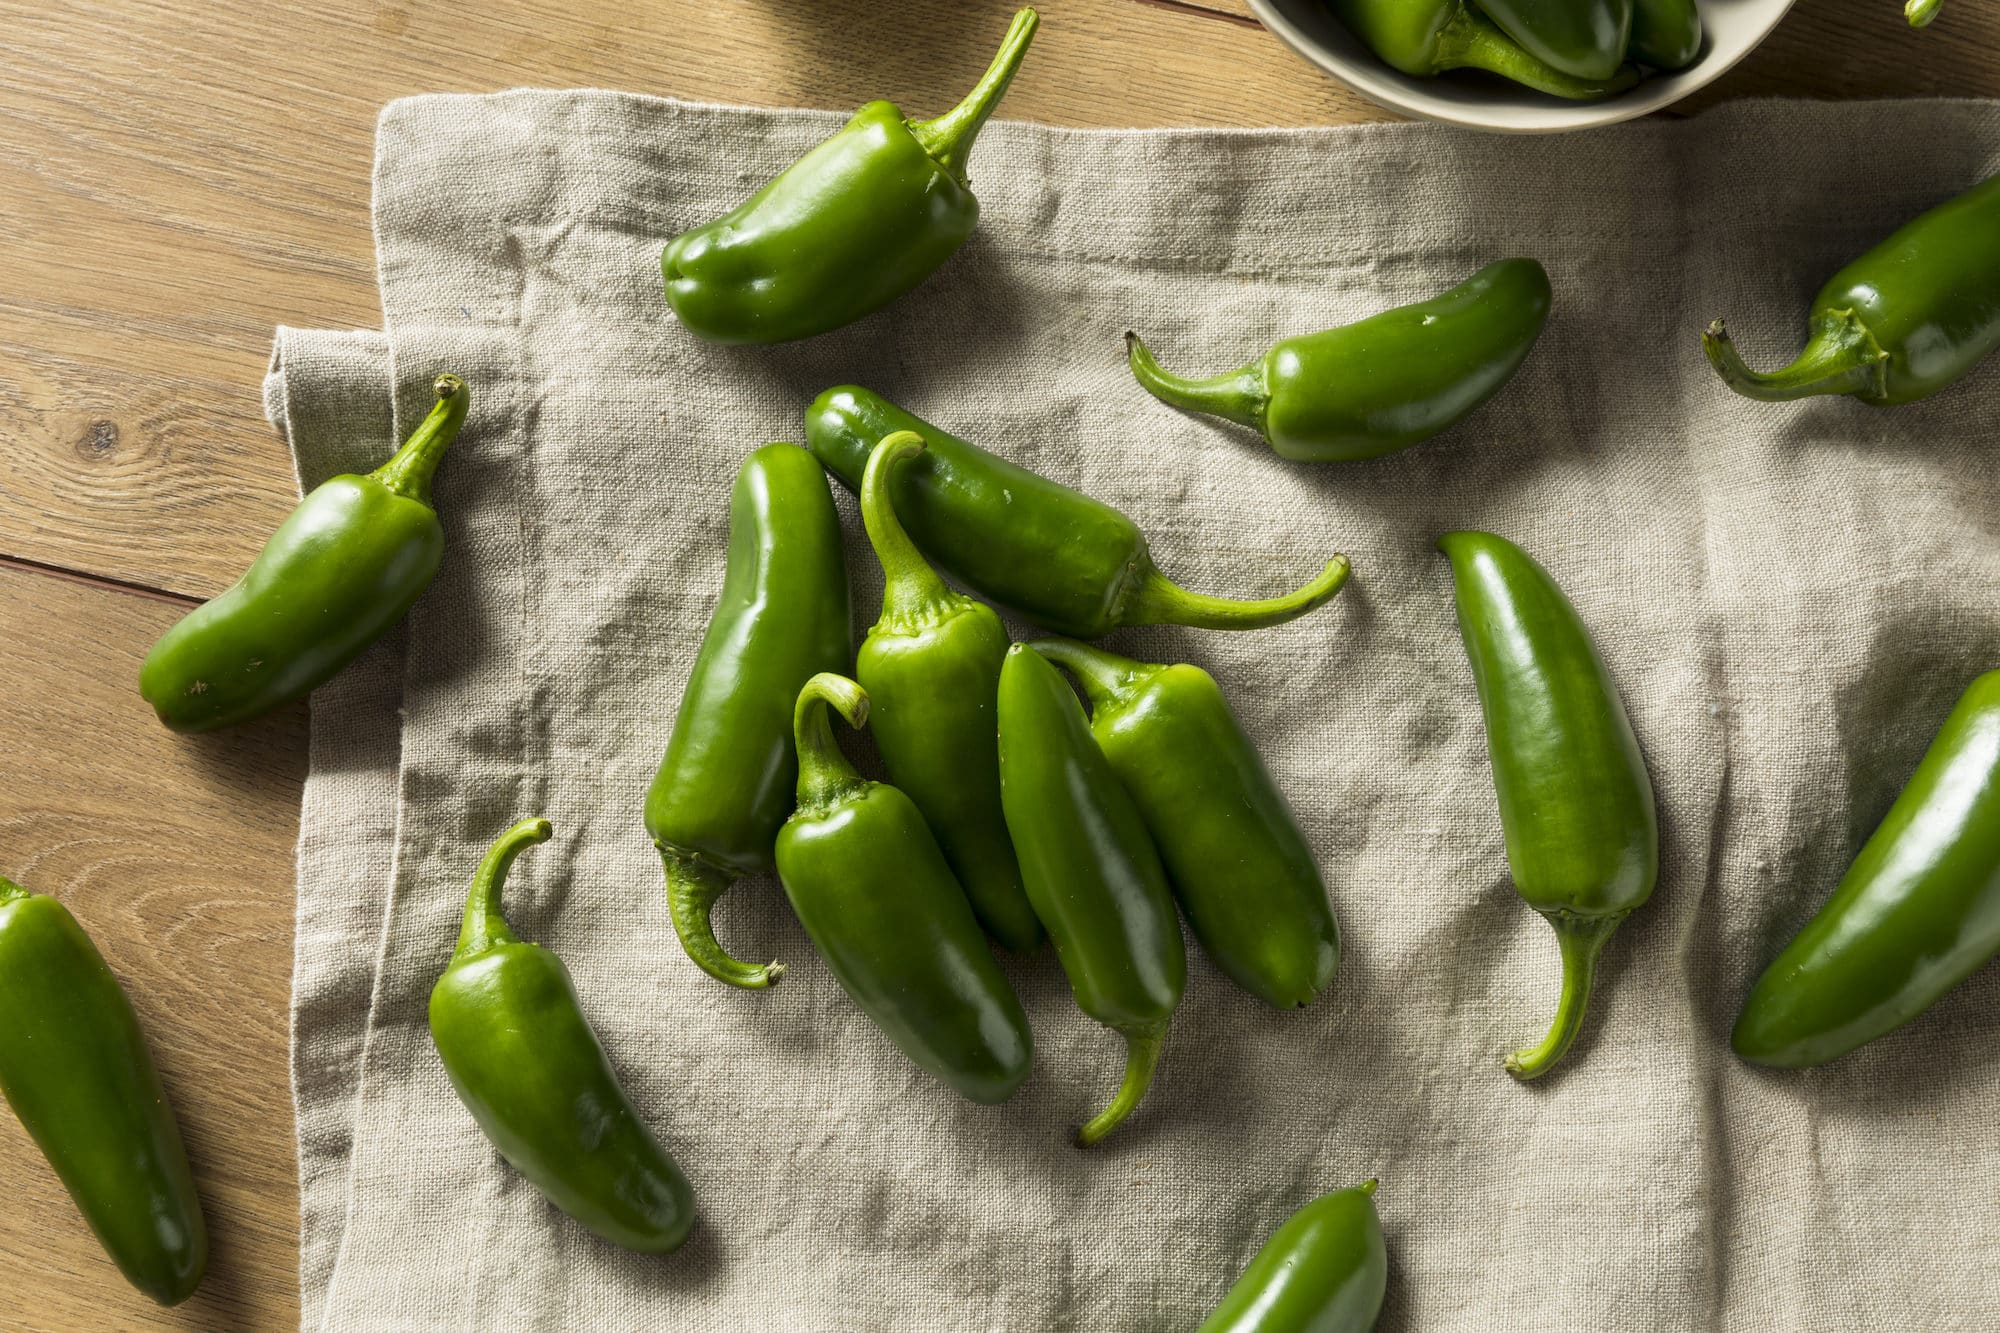 Jalapeño Varieties Are Many…And All Delicious